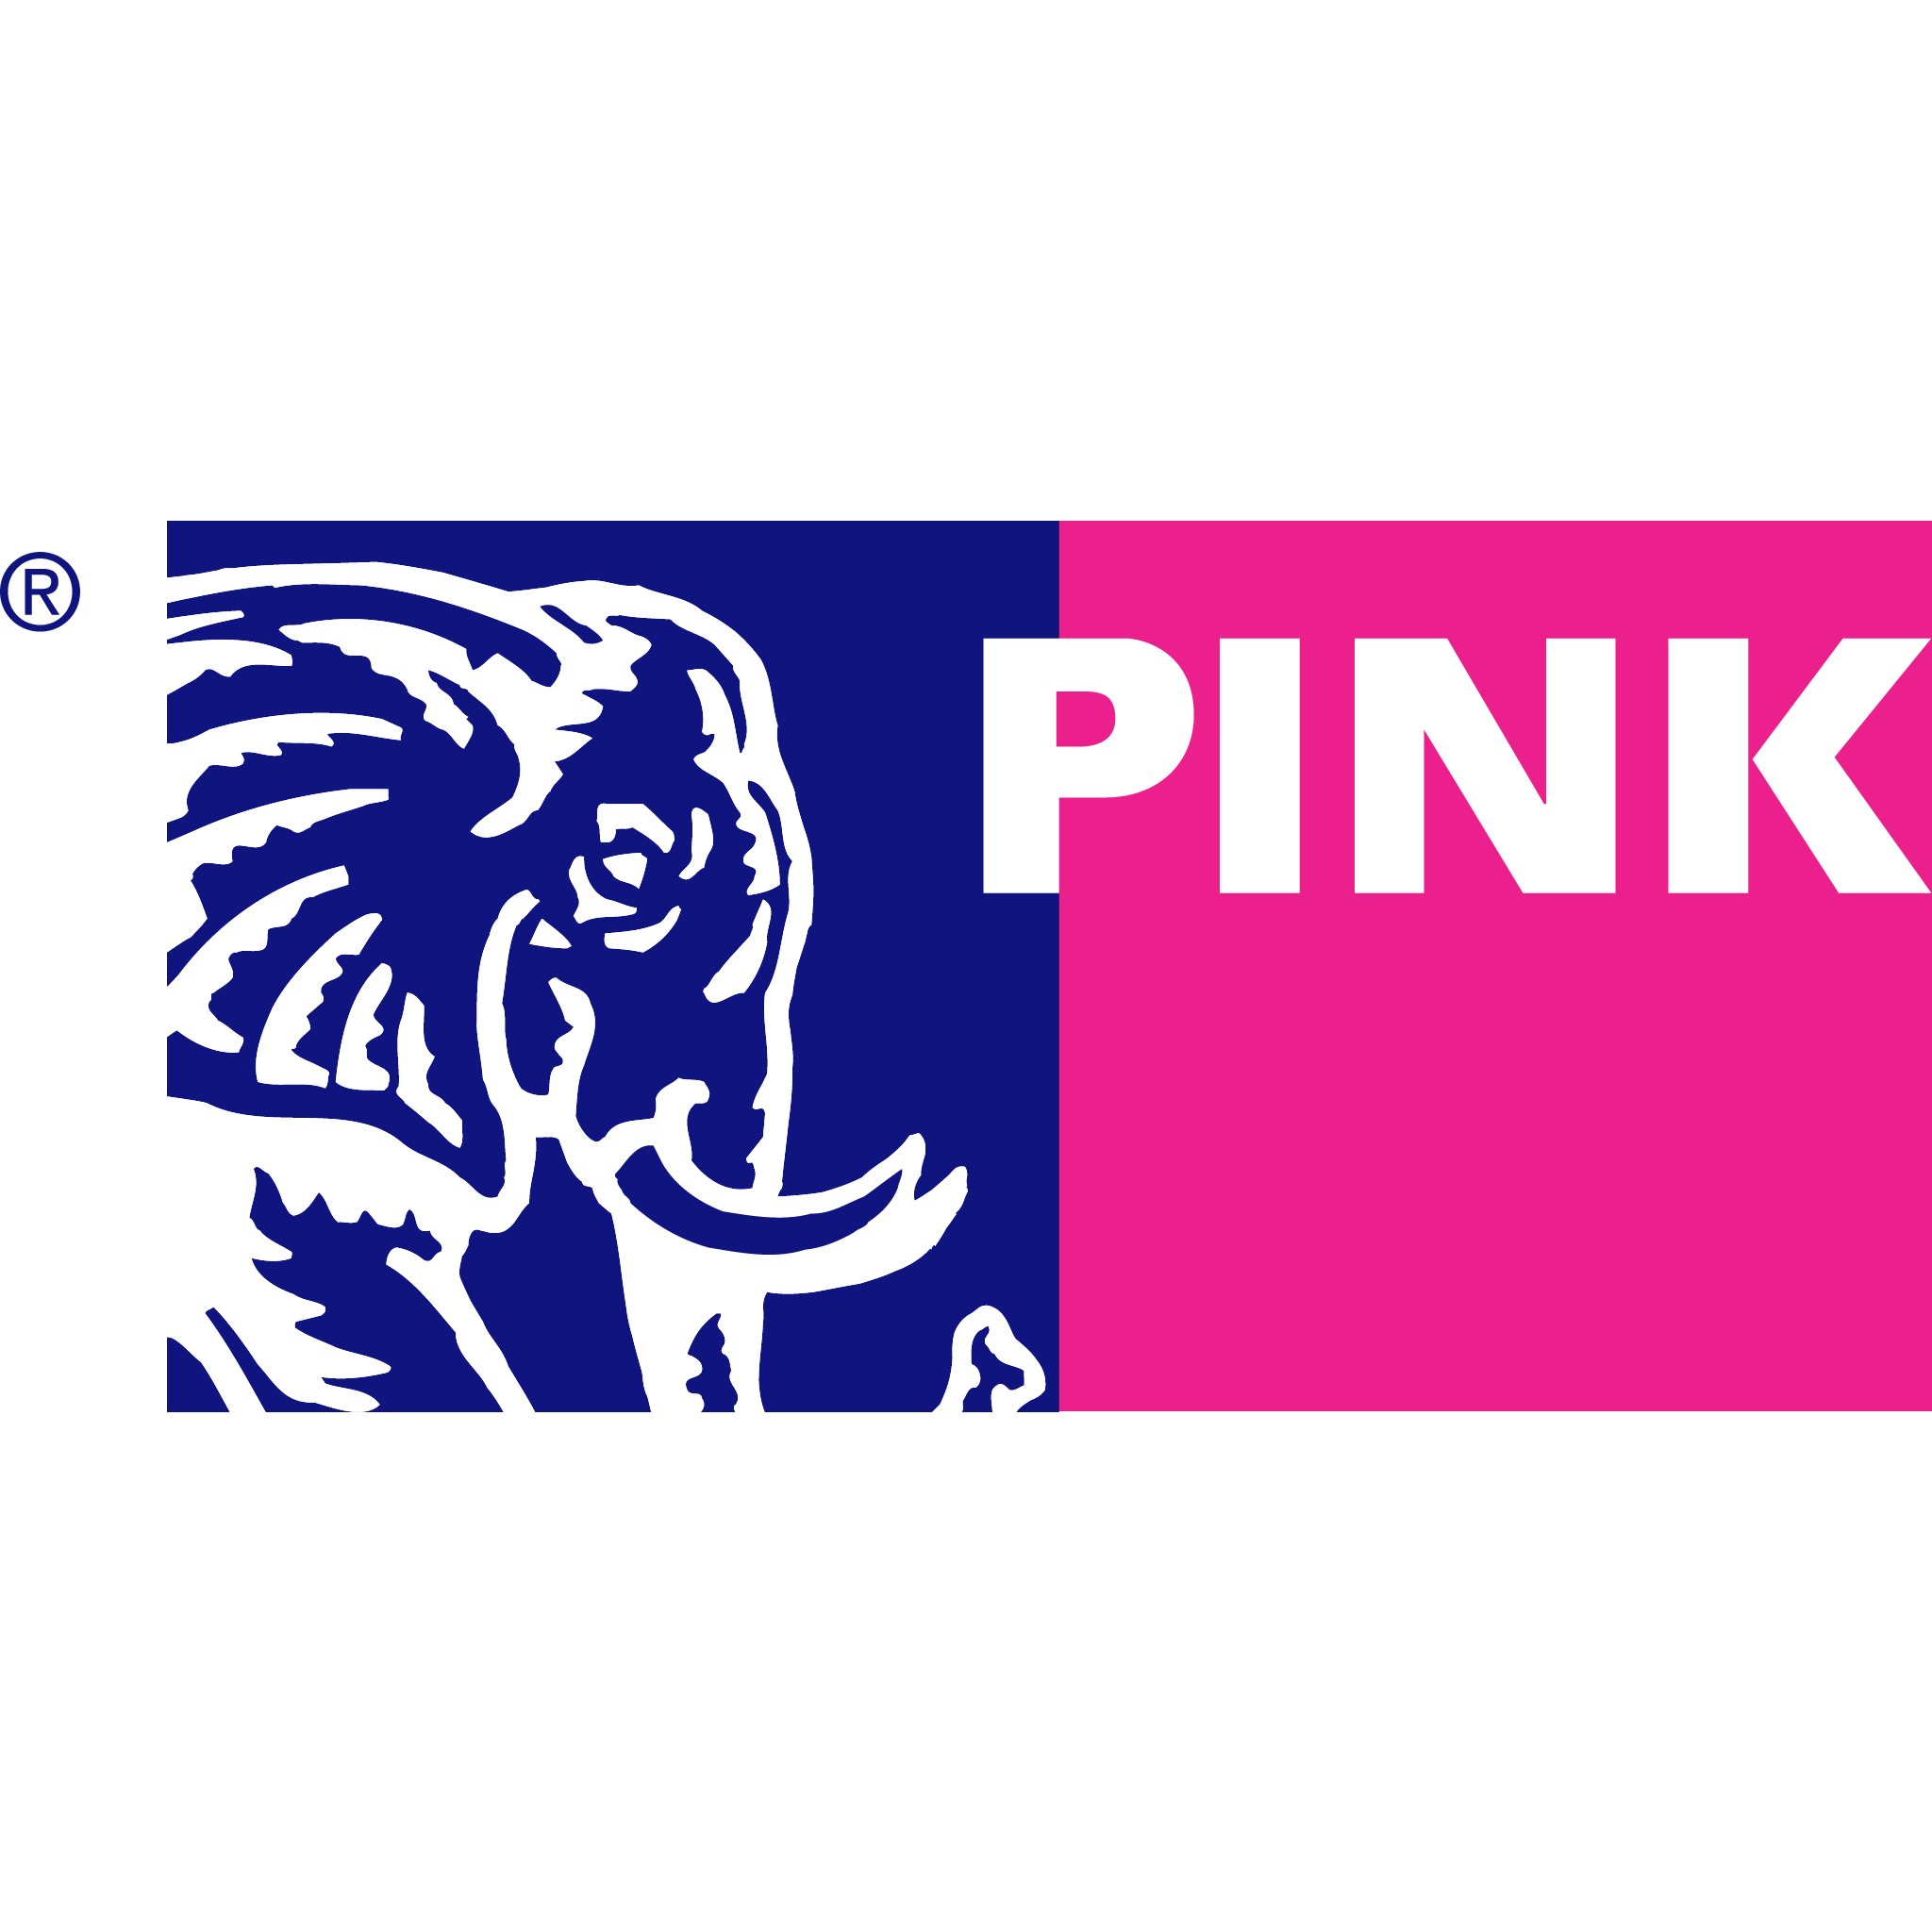 Pink Elephant - The IT and ITIL Service Management Experts